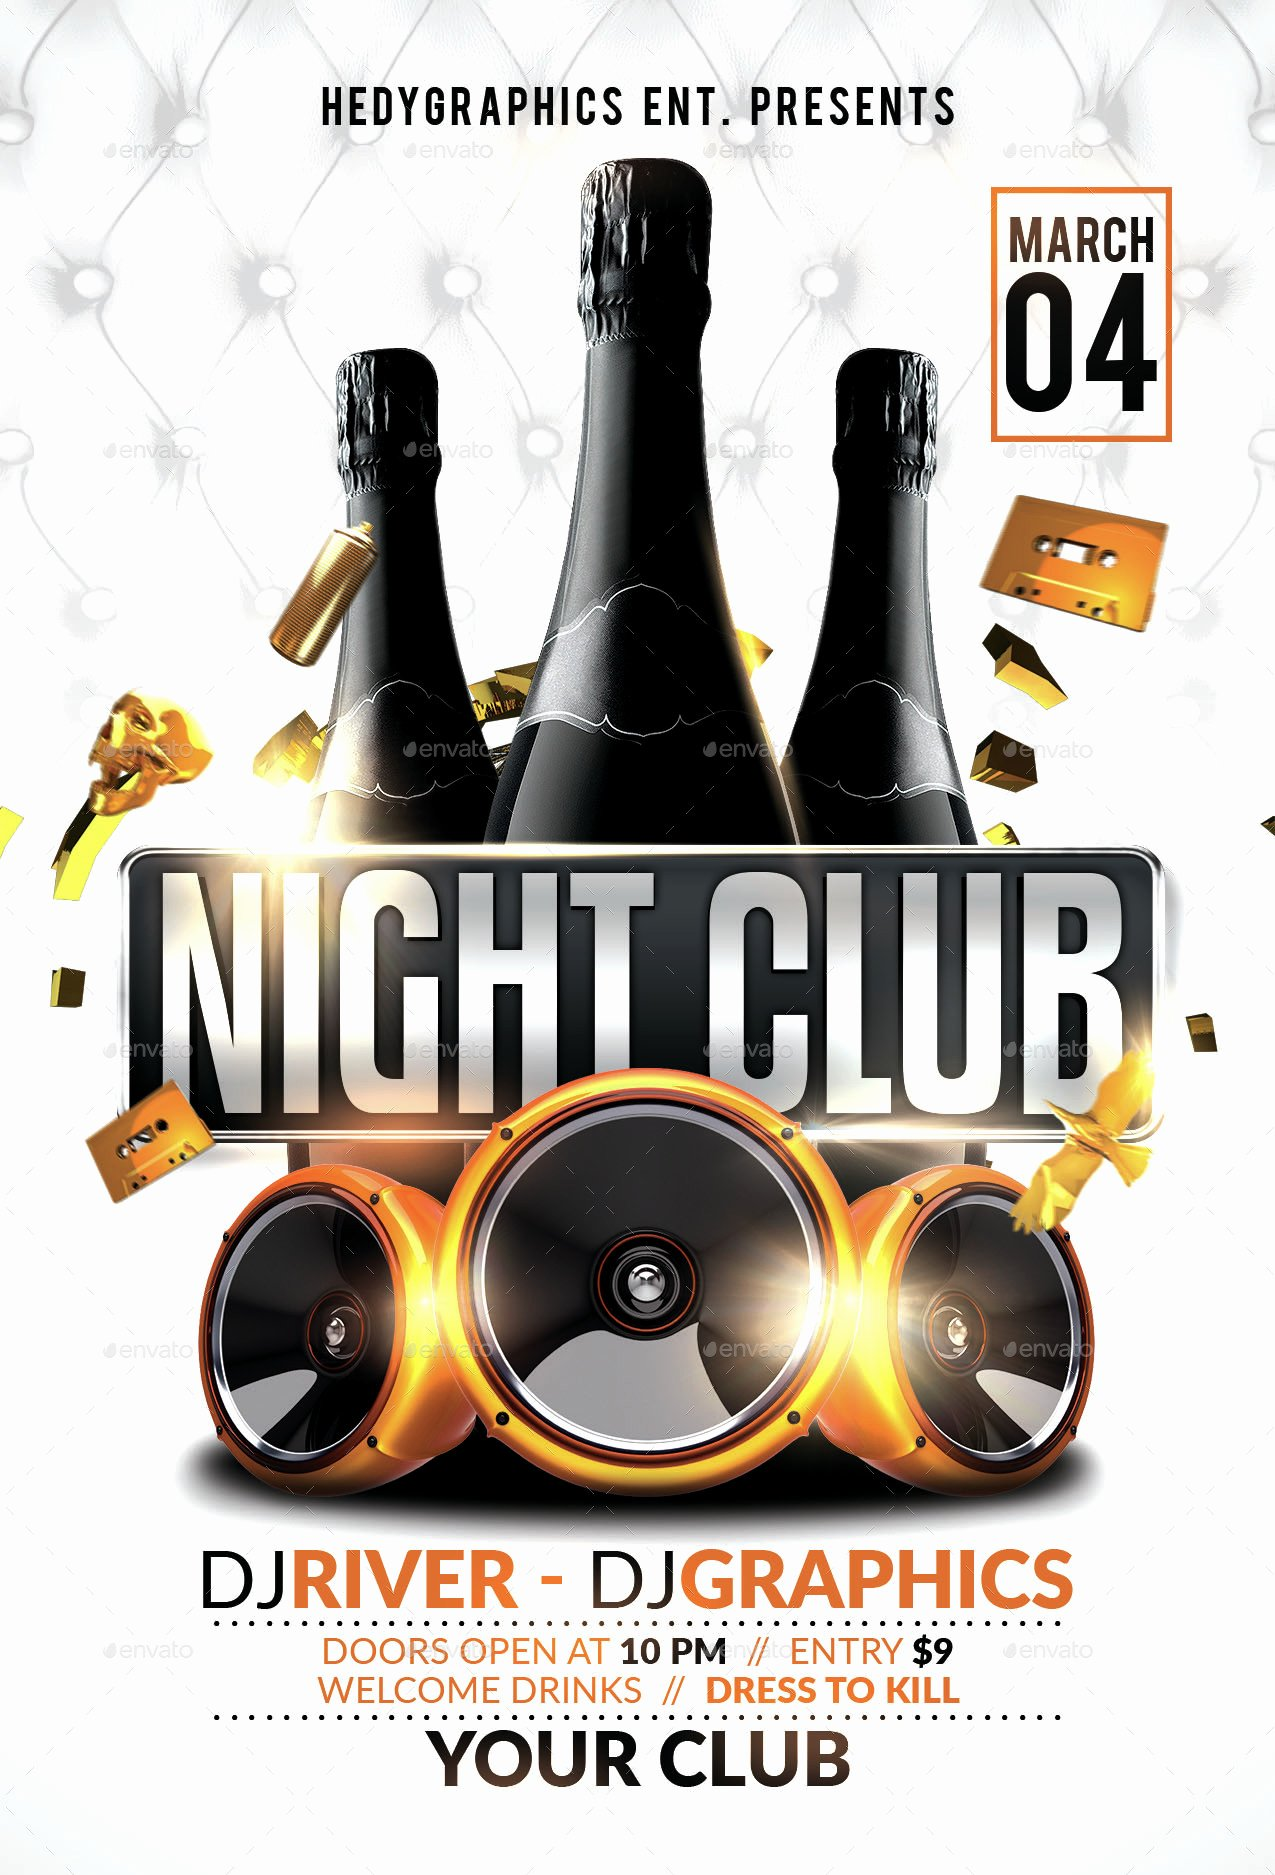 Night Club Flyer Template by Hedygraphics